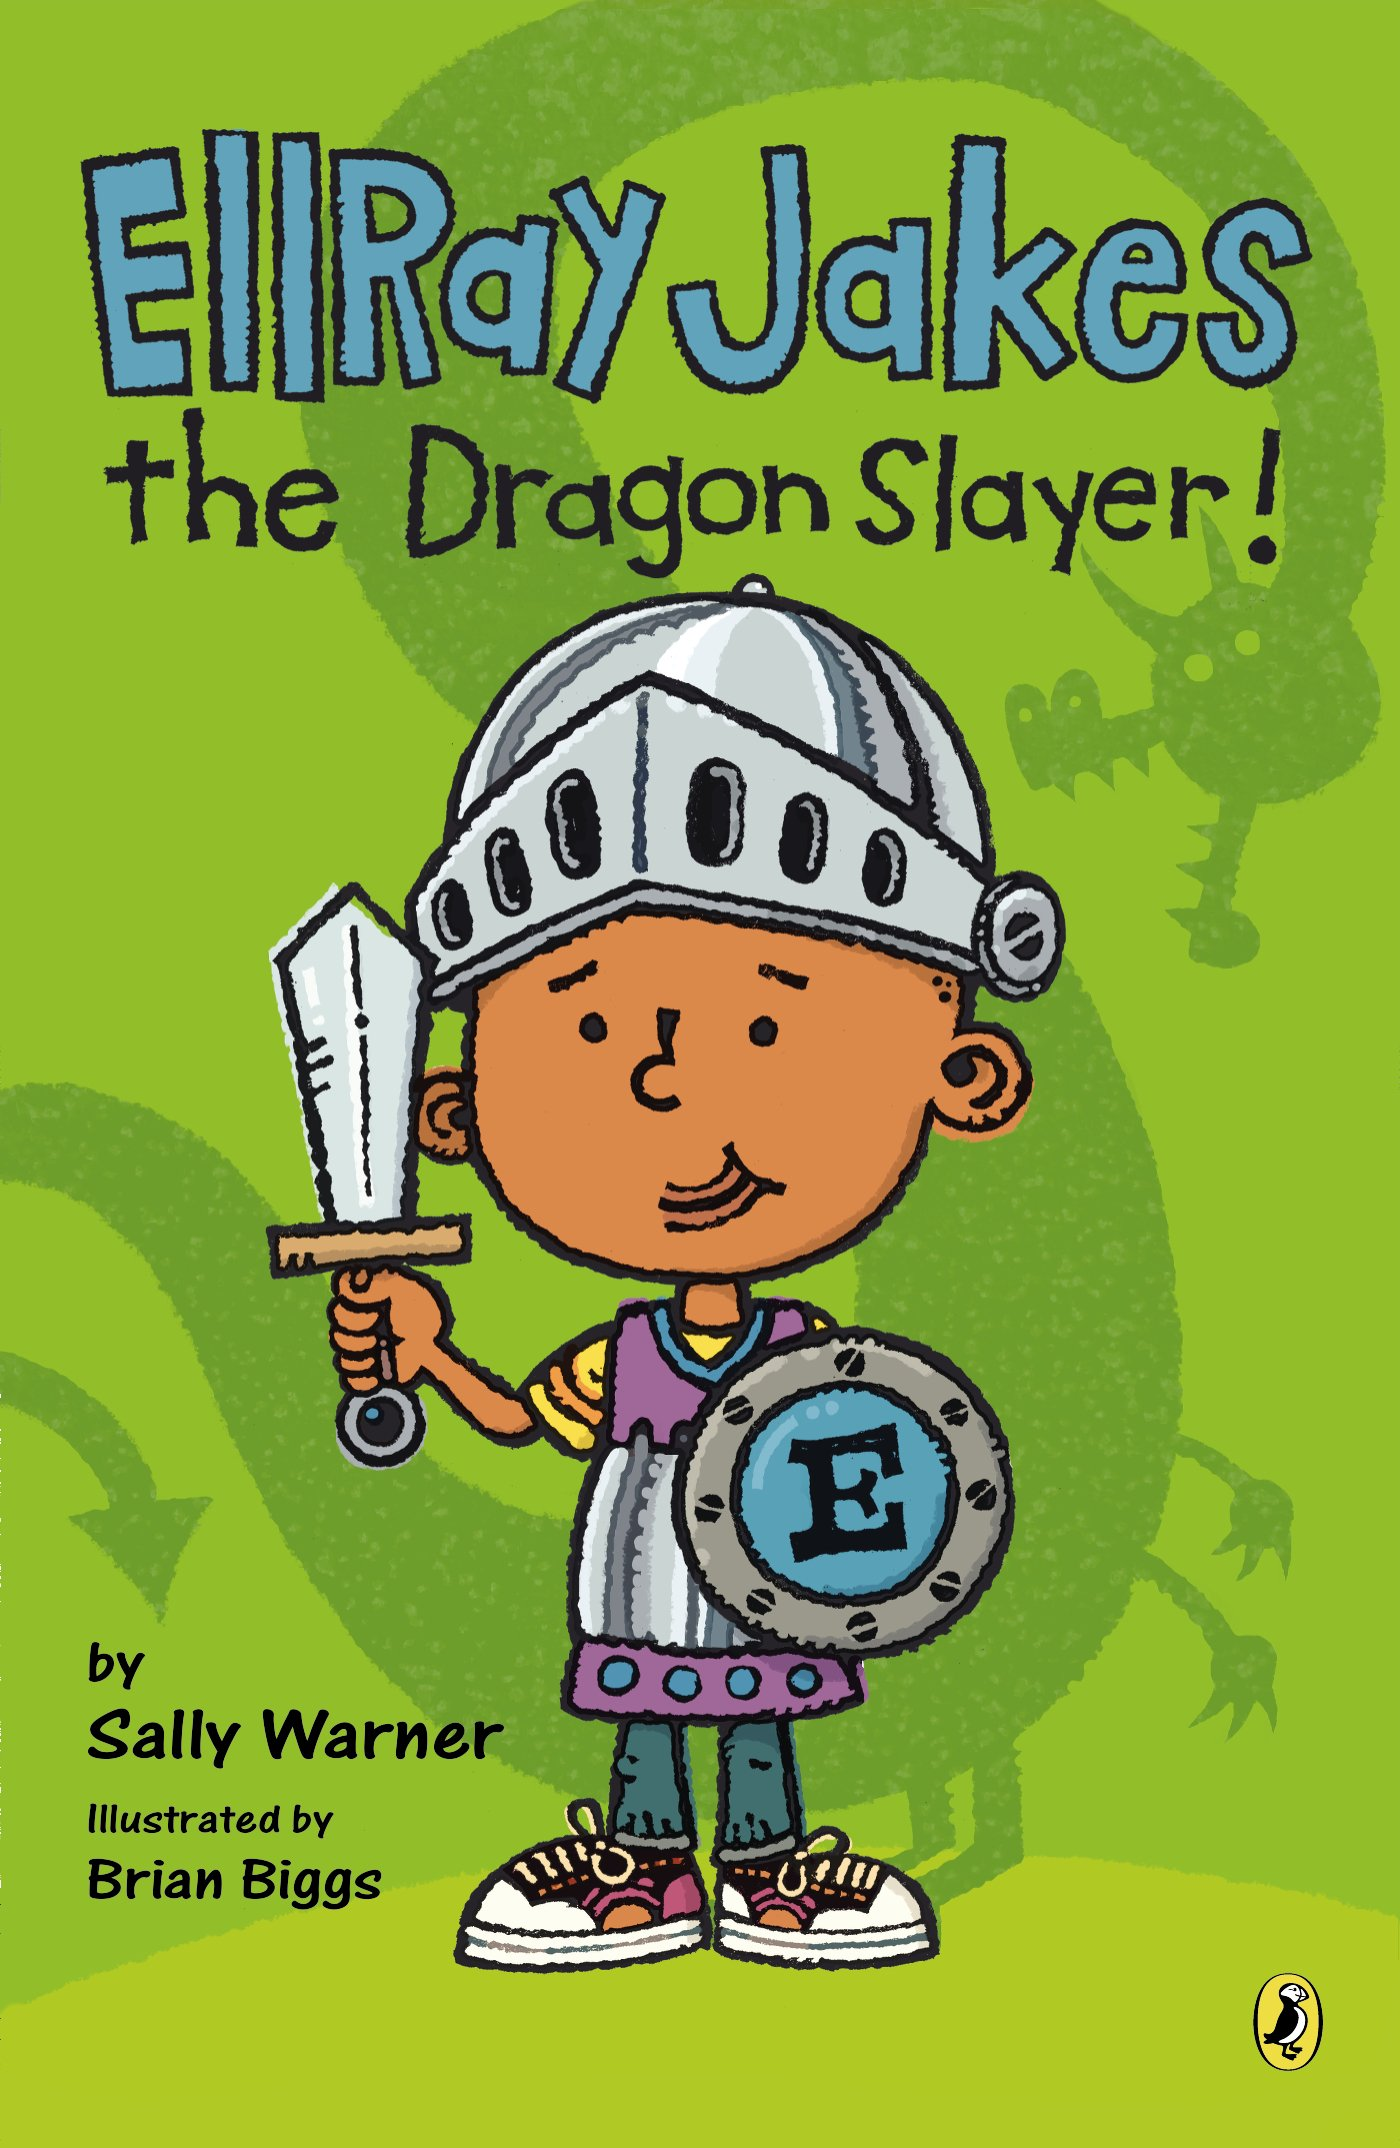 ellray-jakes-the-dragon-slayer